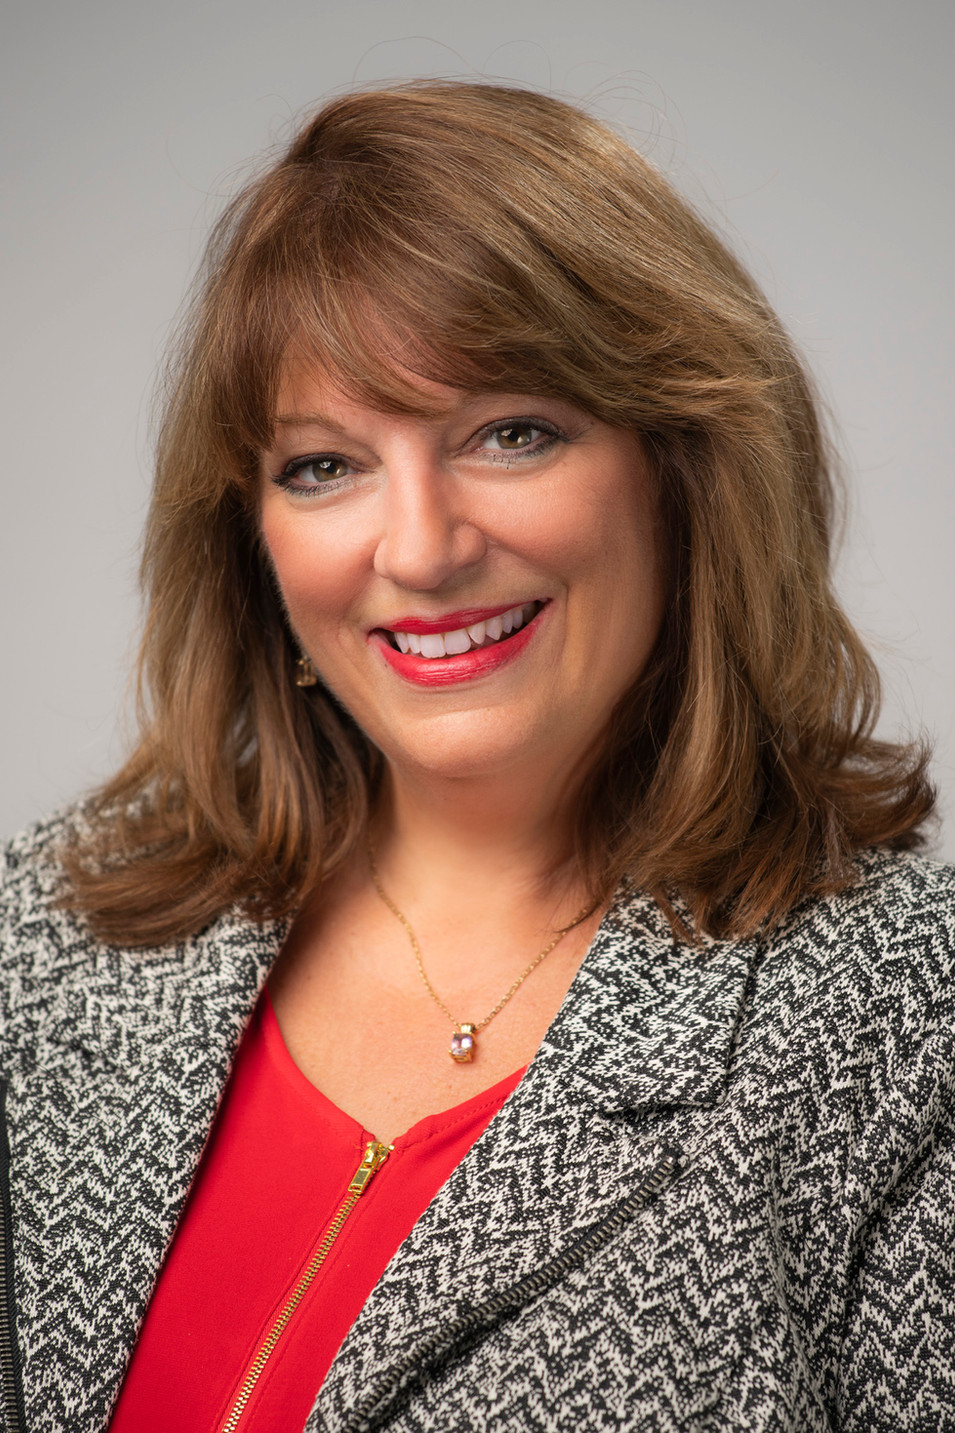 Studio Headshot of a middle age woman